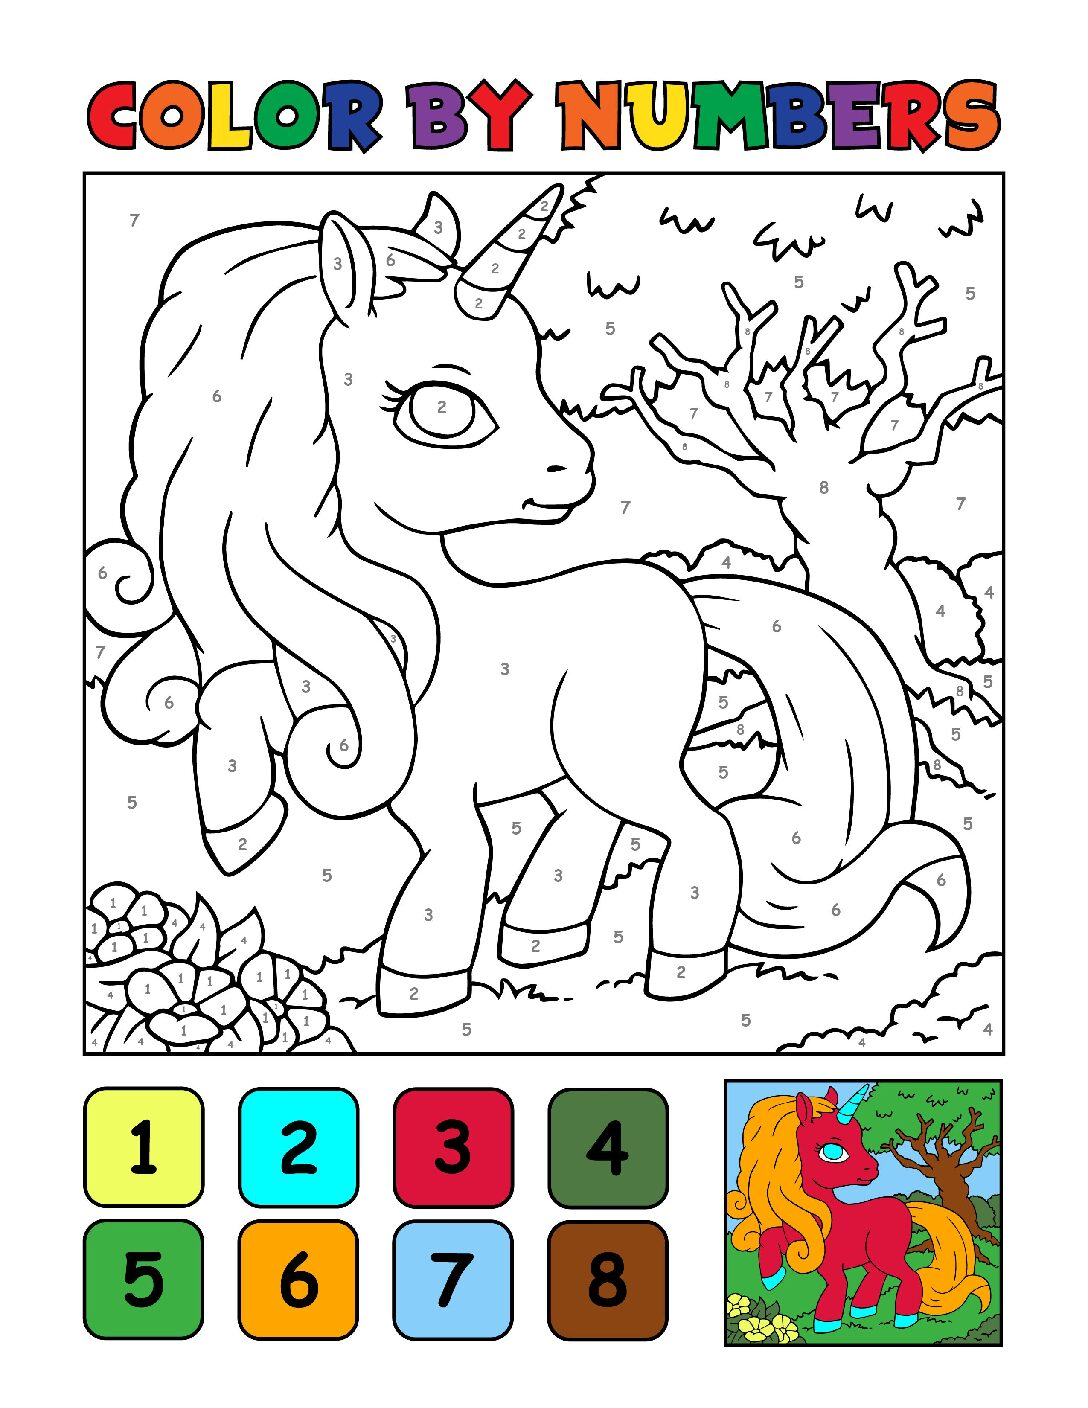 Color-by-Numbers-Kids_Unicorns-17-01-pdf Free Printable Unicorn Colouring Pages